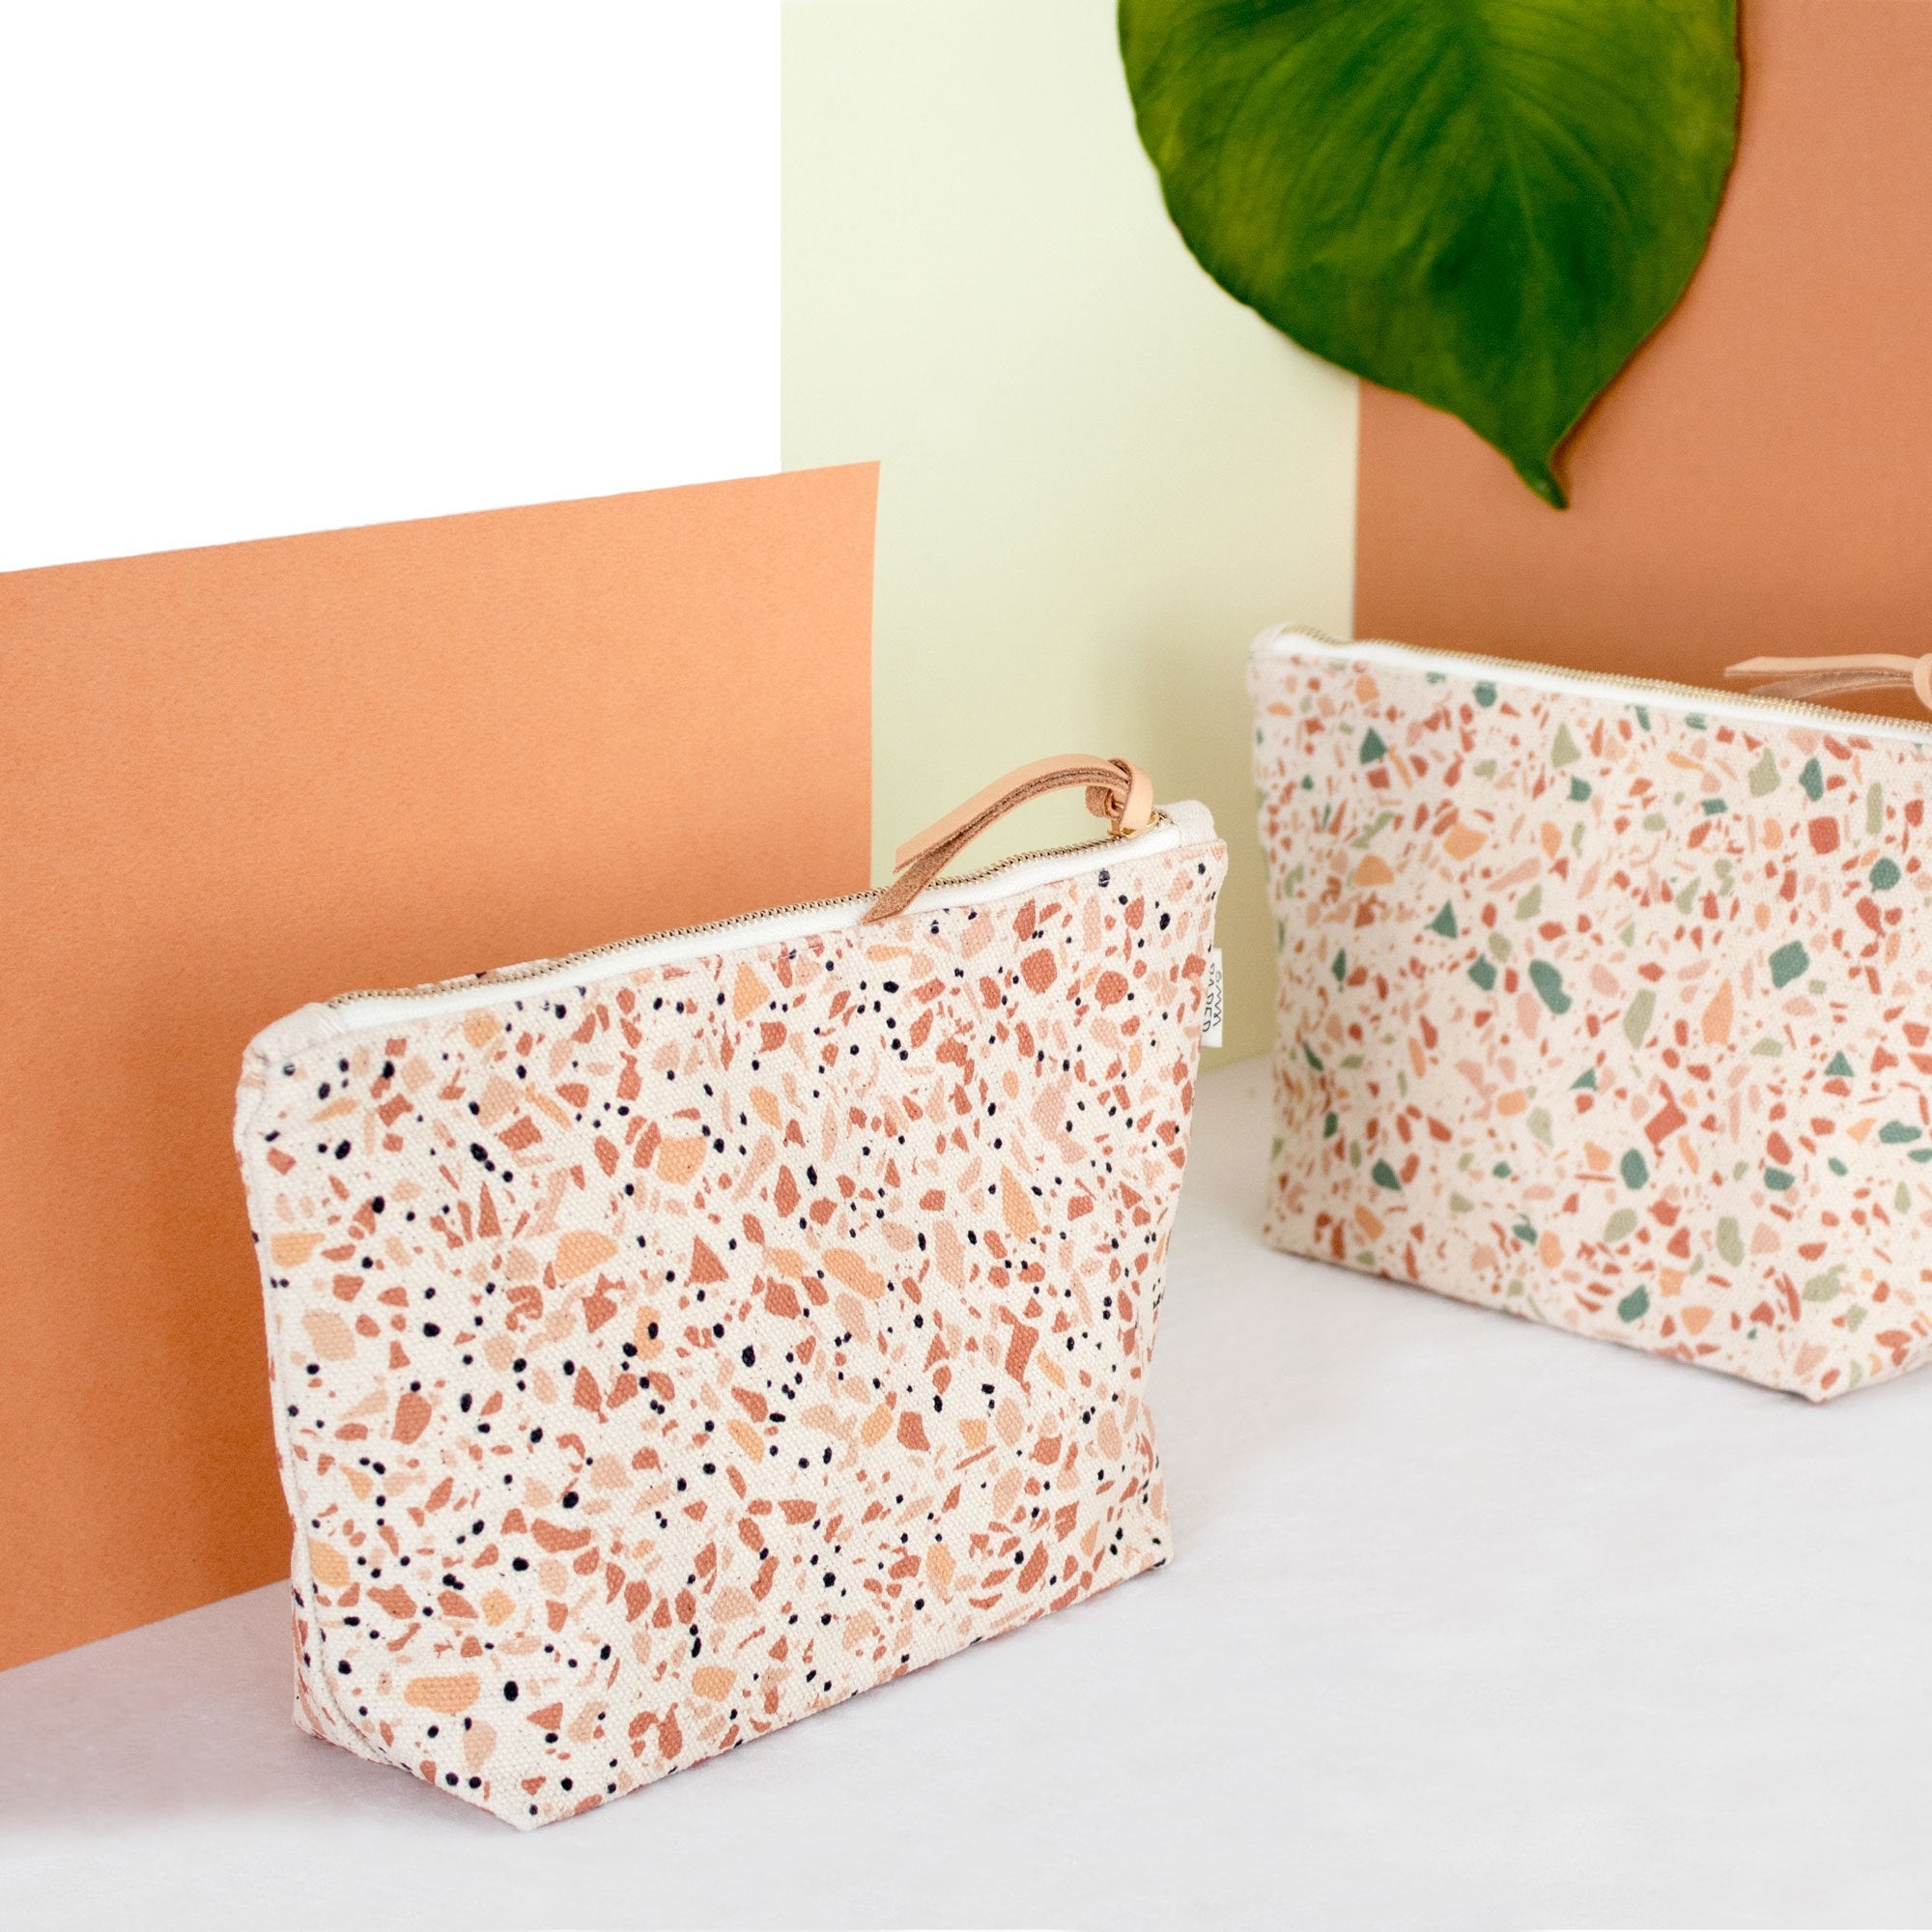 Terrazzo Terracotta™: Cotton Canvas Make-up Bag & Cosmetics Bag